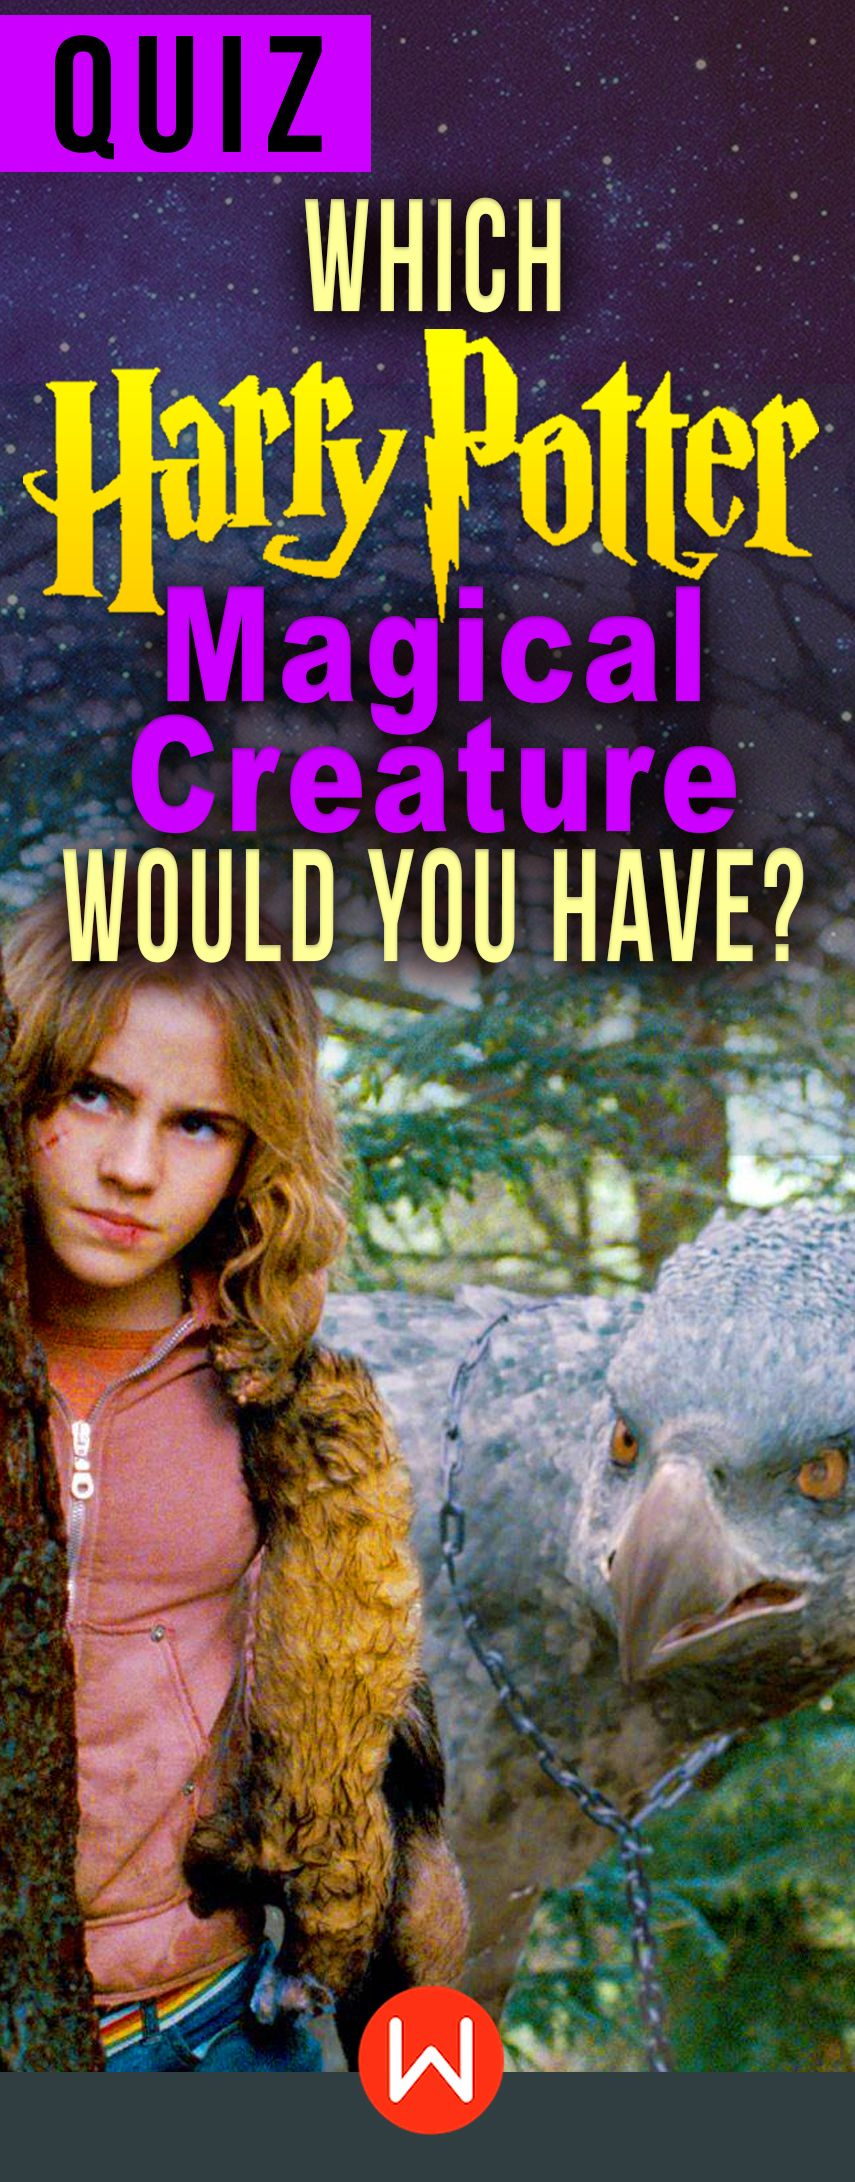 Quiz Which Magical Creature Would You Have In The World